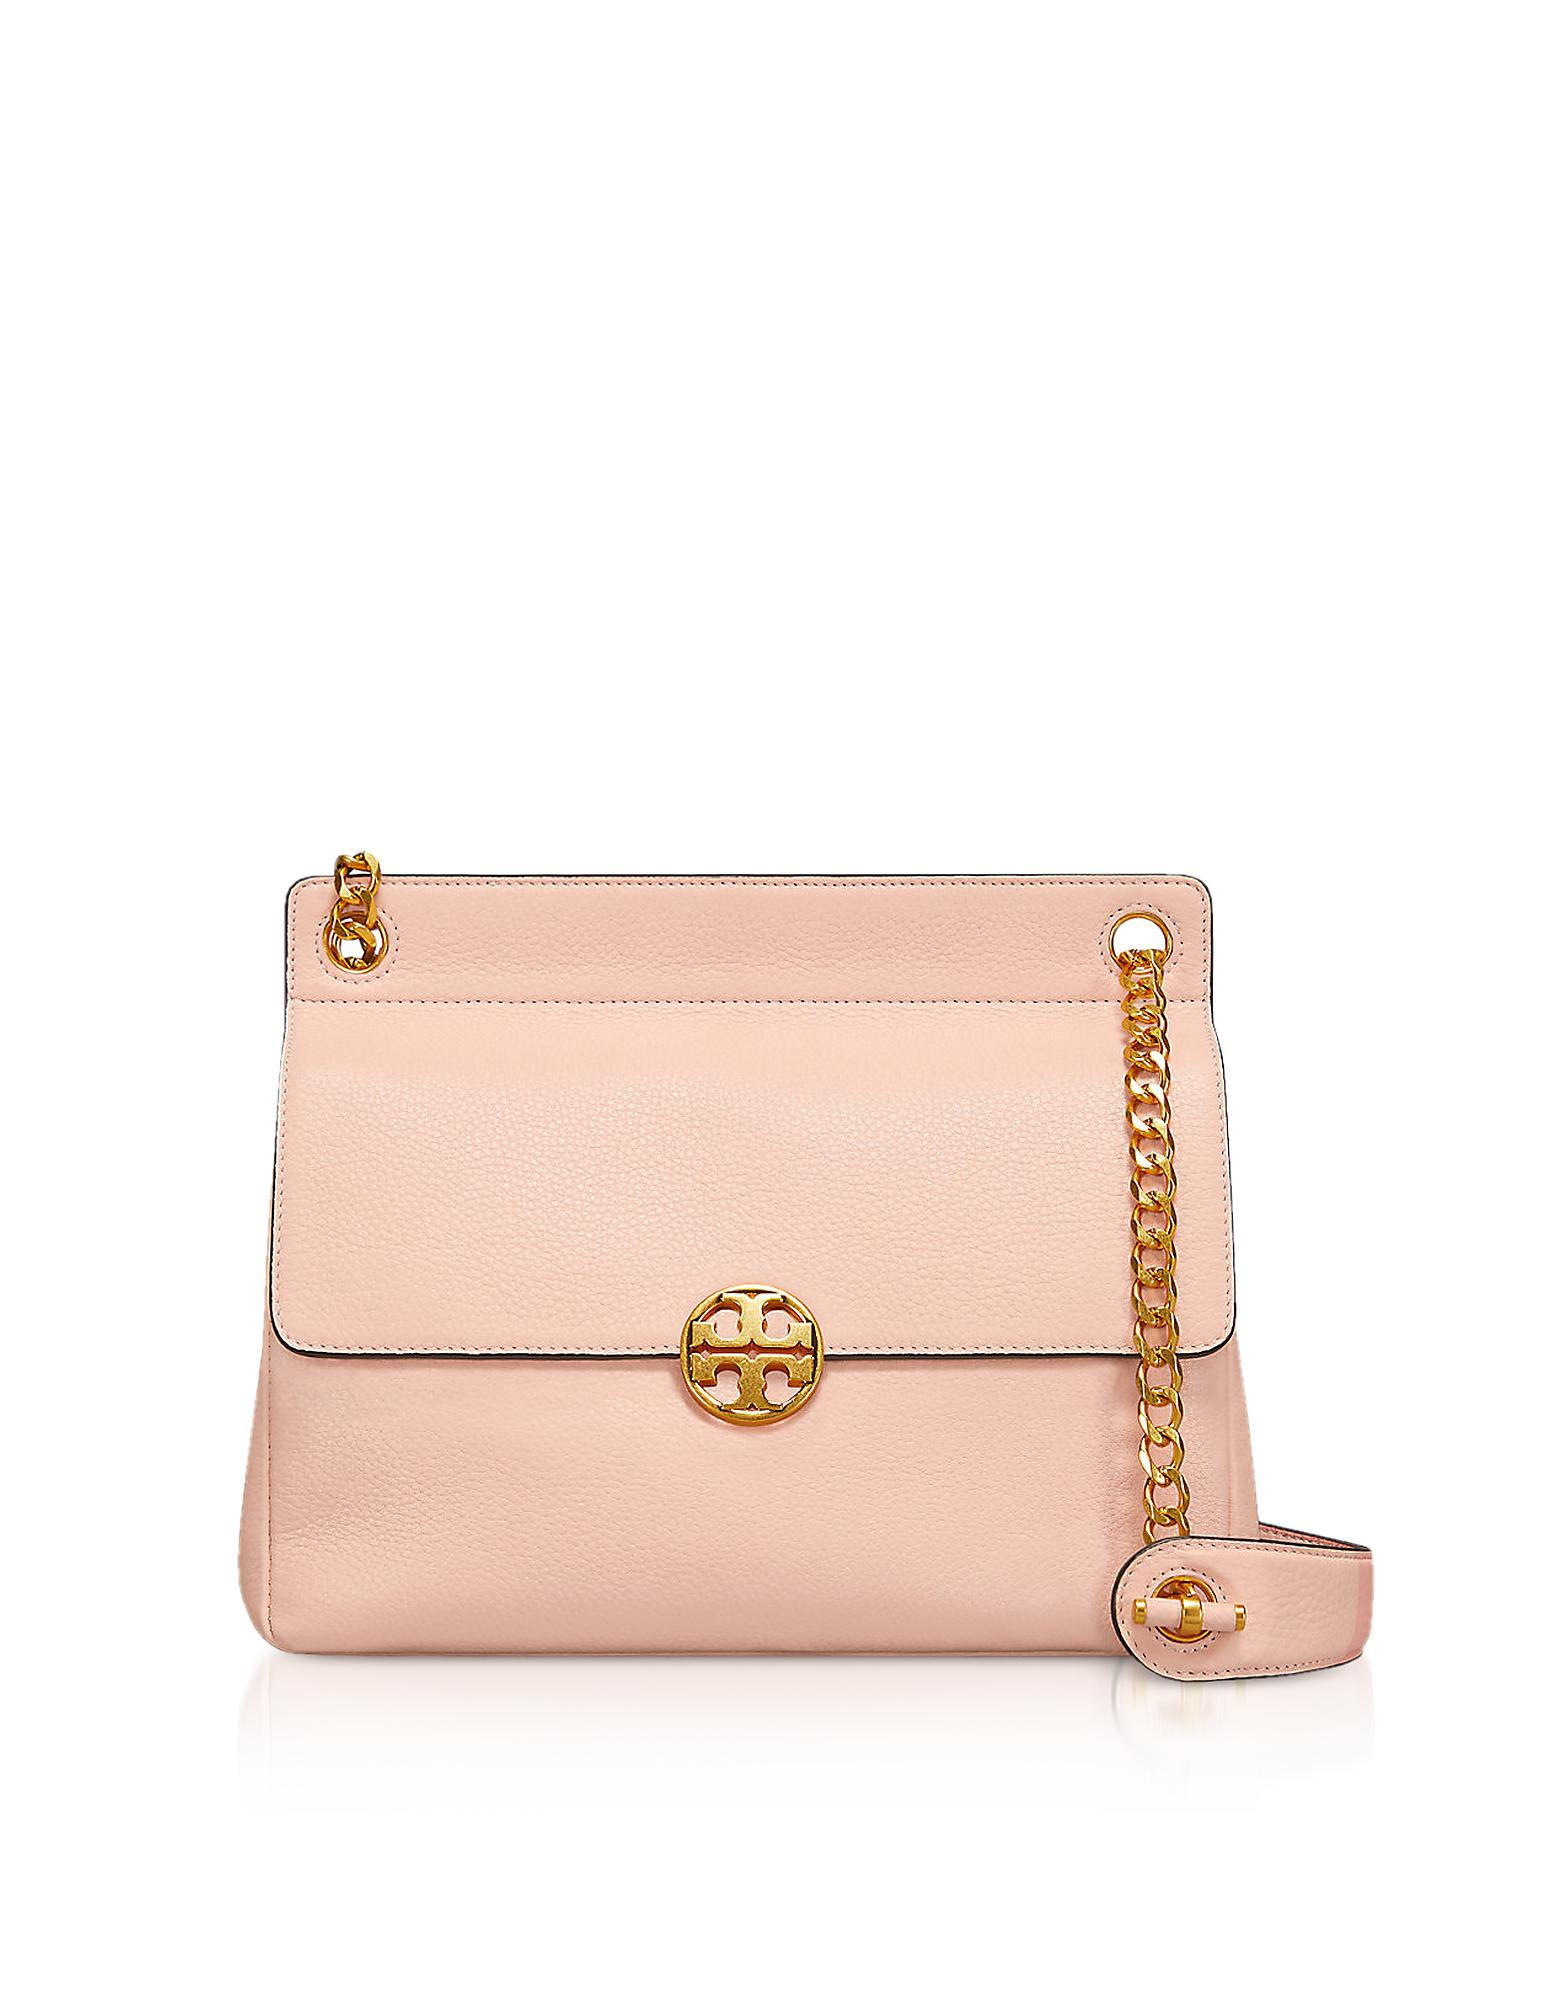 b9a8f7fec724 Tory Burch Pebbled Leather Chelsea Flap Shoulder Bag in Pink - Lyst